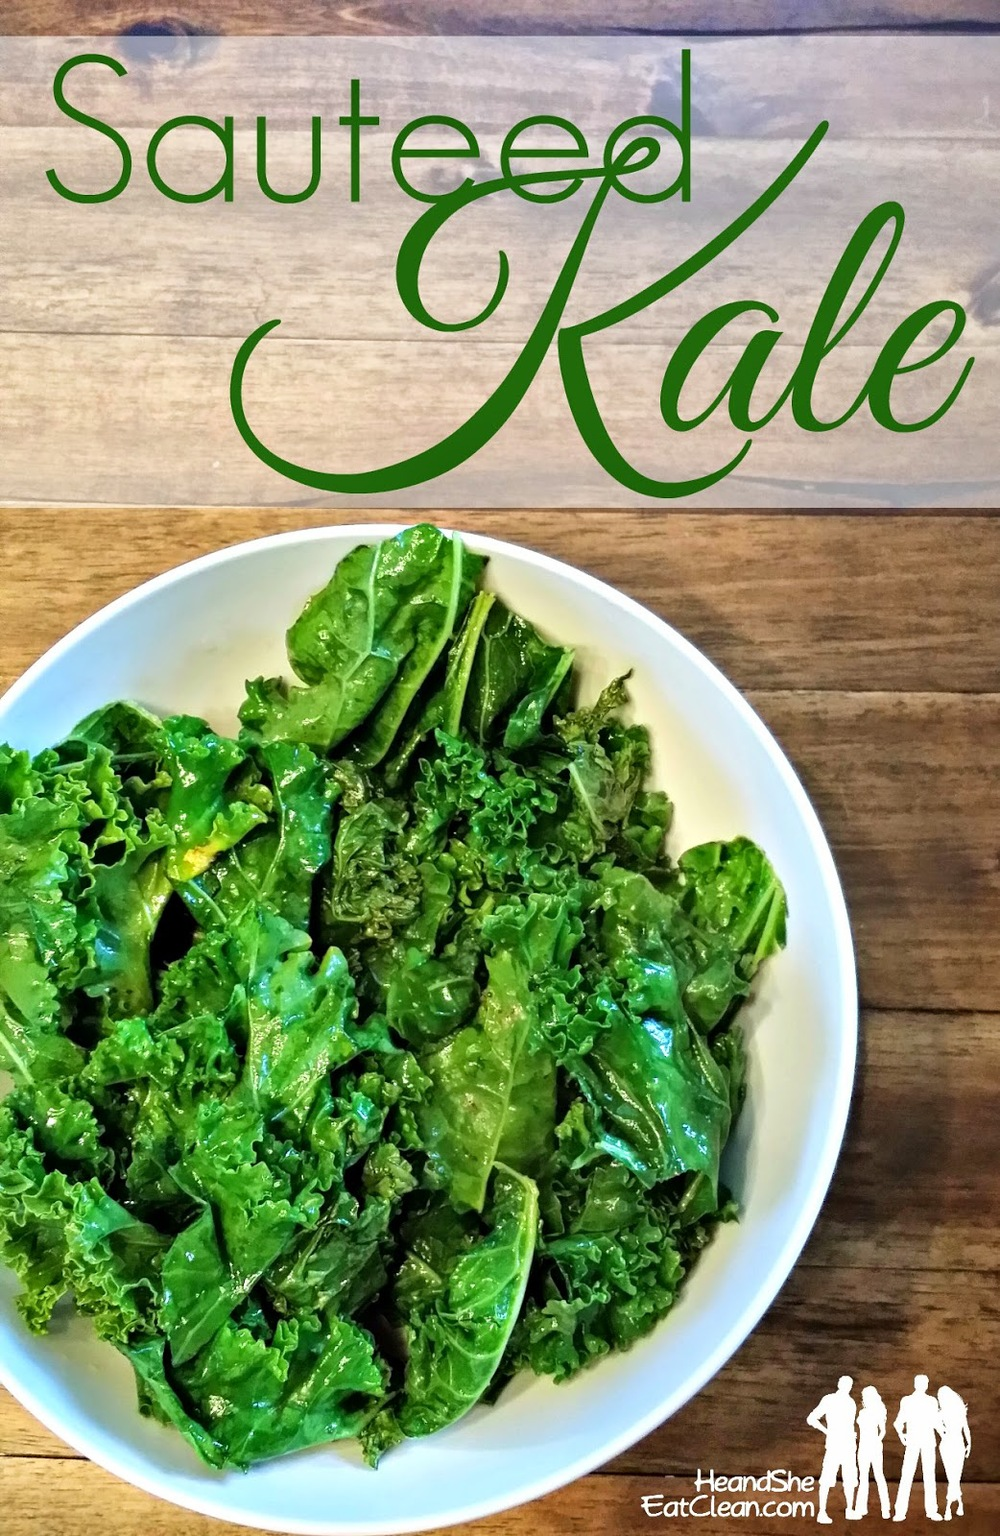 simple-easy-quick-sauteed-vegetables-leafy-greens-kale-not-spinach-paleo-approved-coconut-oil-he-she-eating-clean-2.jpg